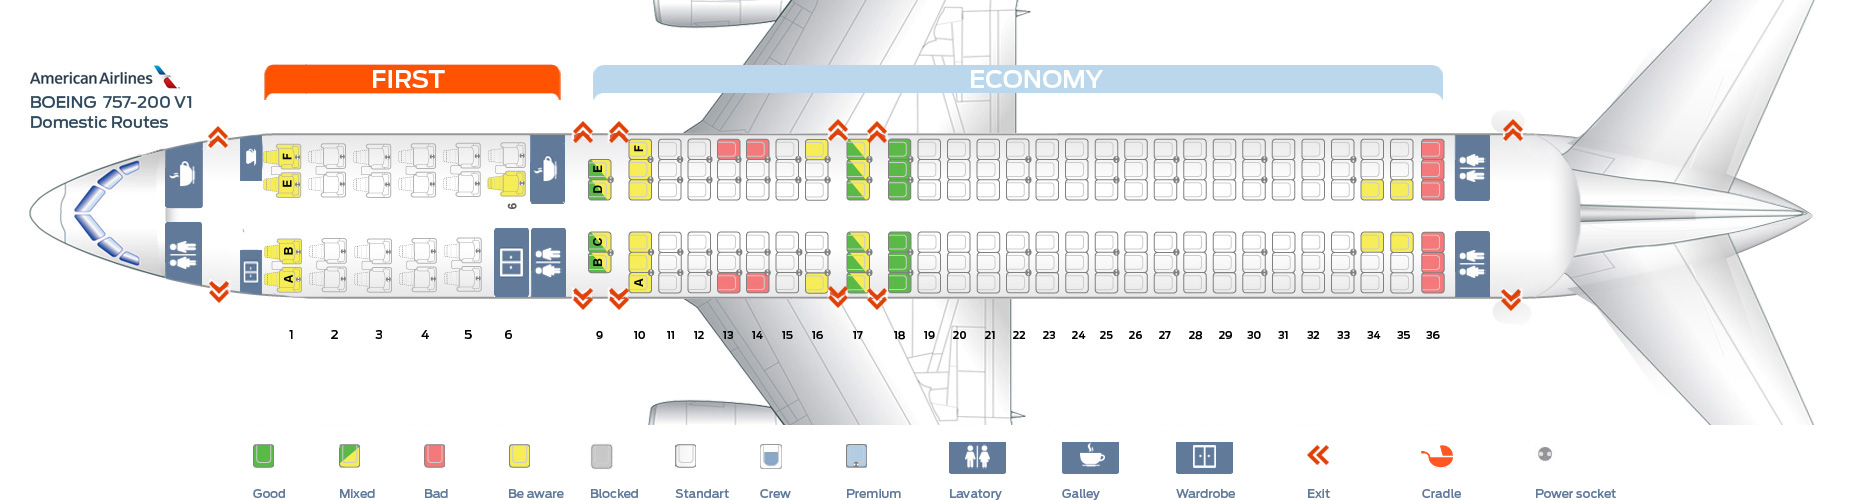 Seat_map_American_Airlines_Boeing_757-200_v1